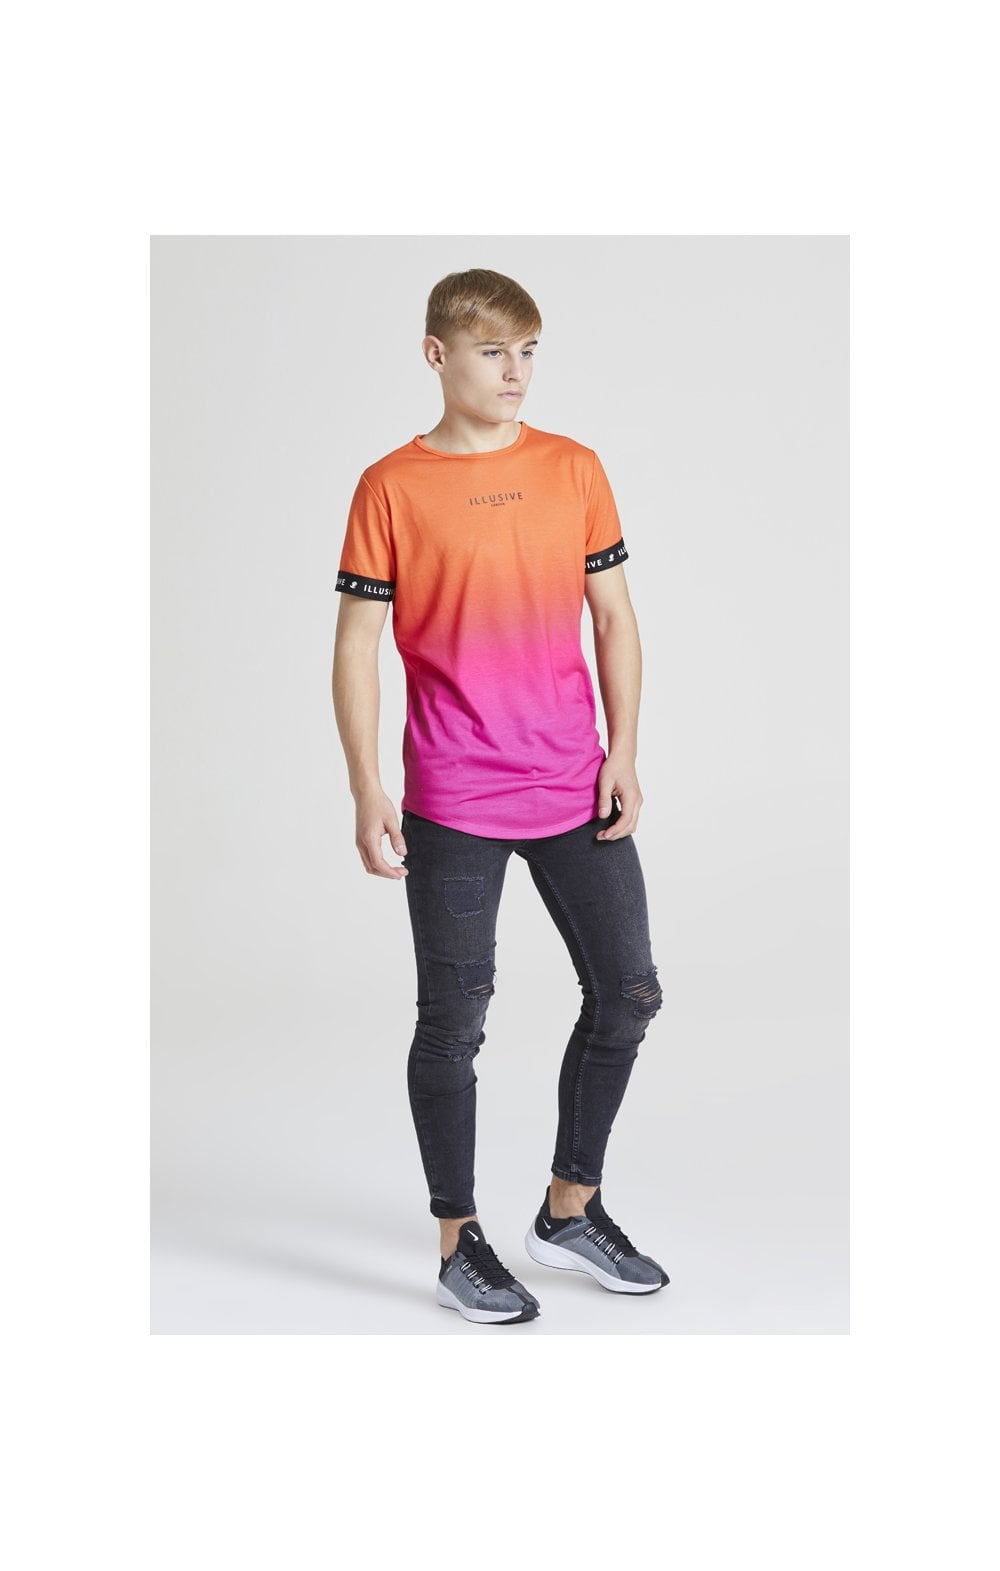 Illusive London Sbiadito T-Shirt 'Tech' - Arrancia & Rosa (2)